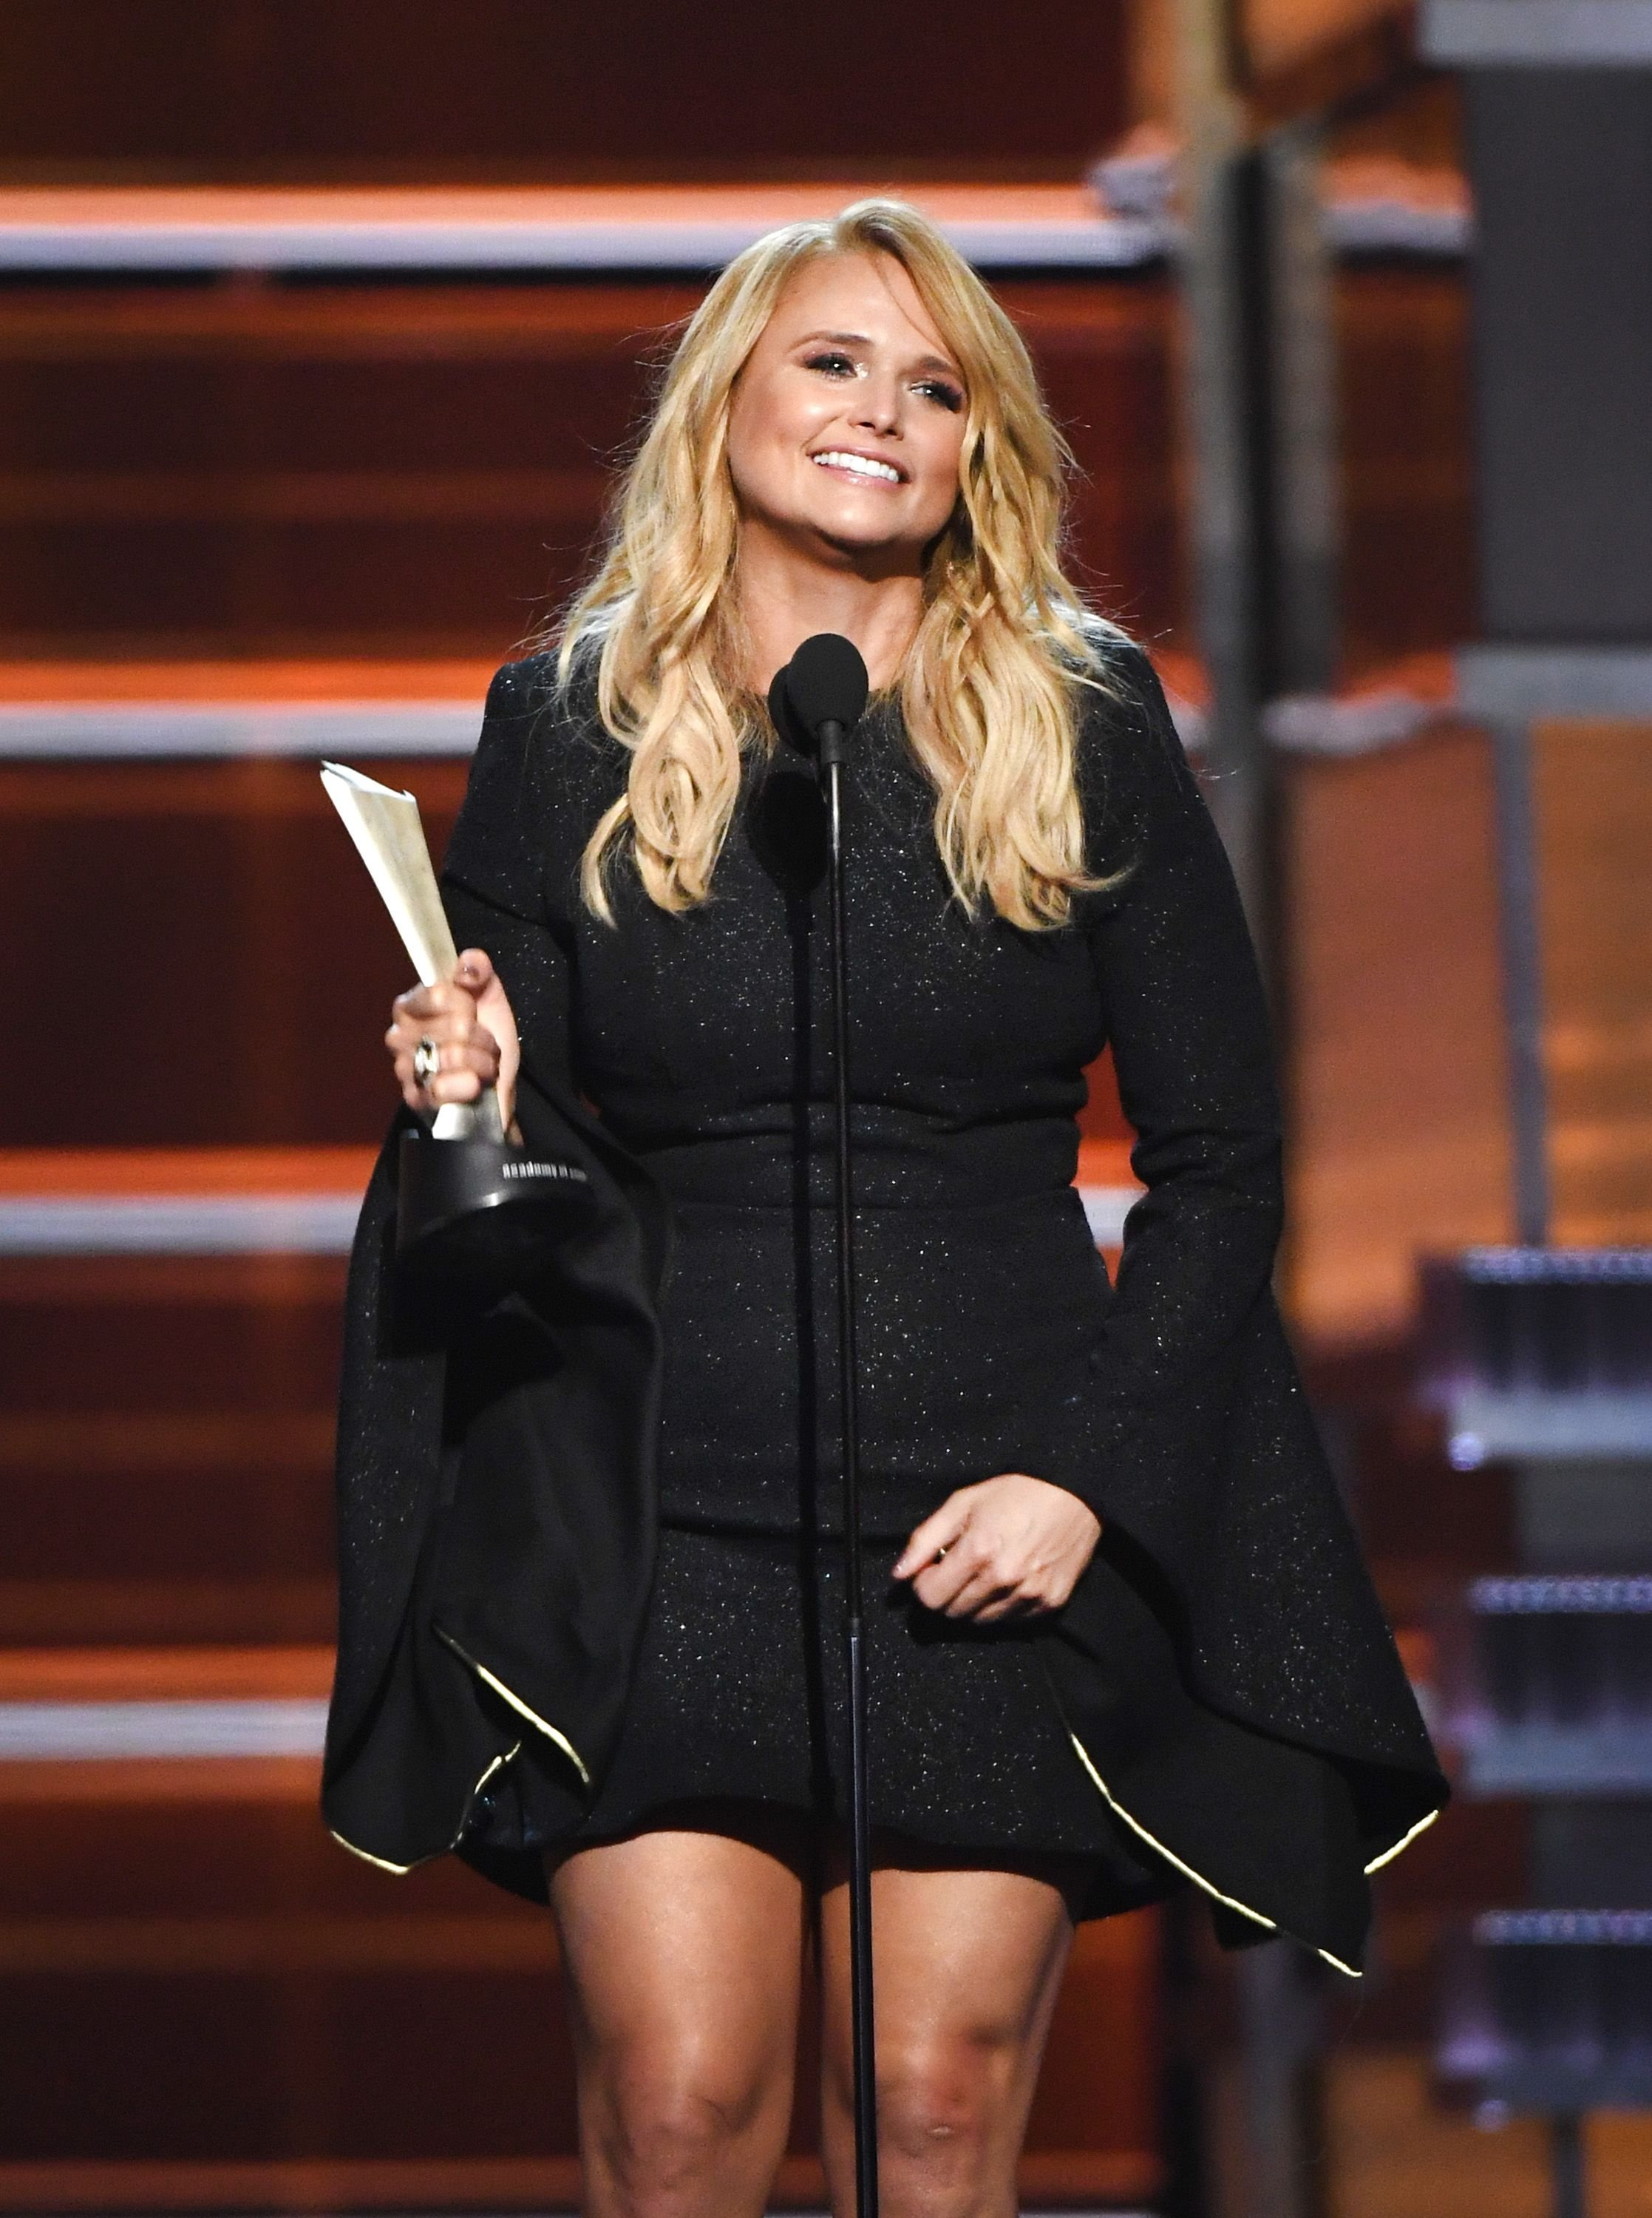 Miranda Lambert wins the Female Vocalist of the Year award onstage during the 53rd Academy of Country Music Awards at MGM Grand Garden Arena on April 15, 2018 in Las Vegas, Nevada. | Source: Getty Images